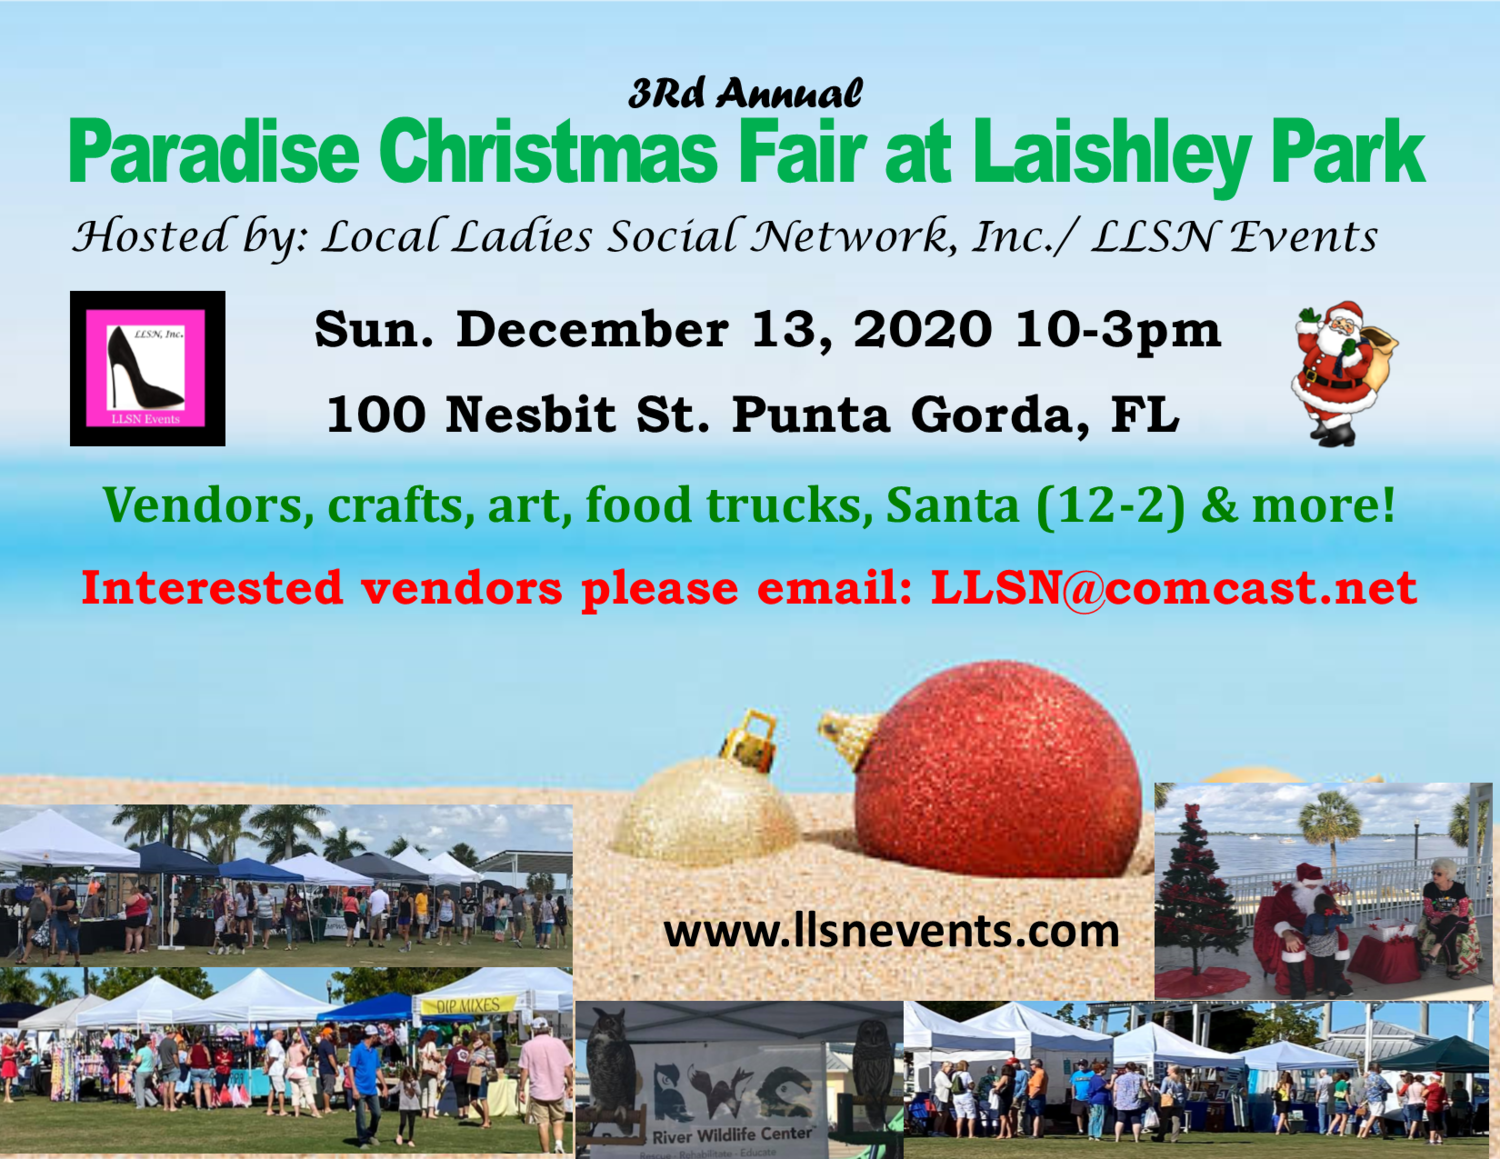 3rd Annual Paradise Christmas Fair at Laishley Park- Dec 13th 2020